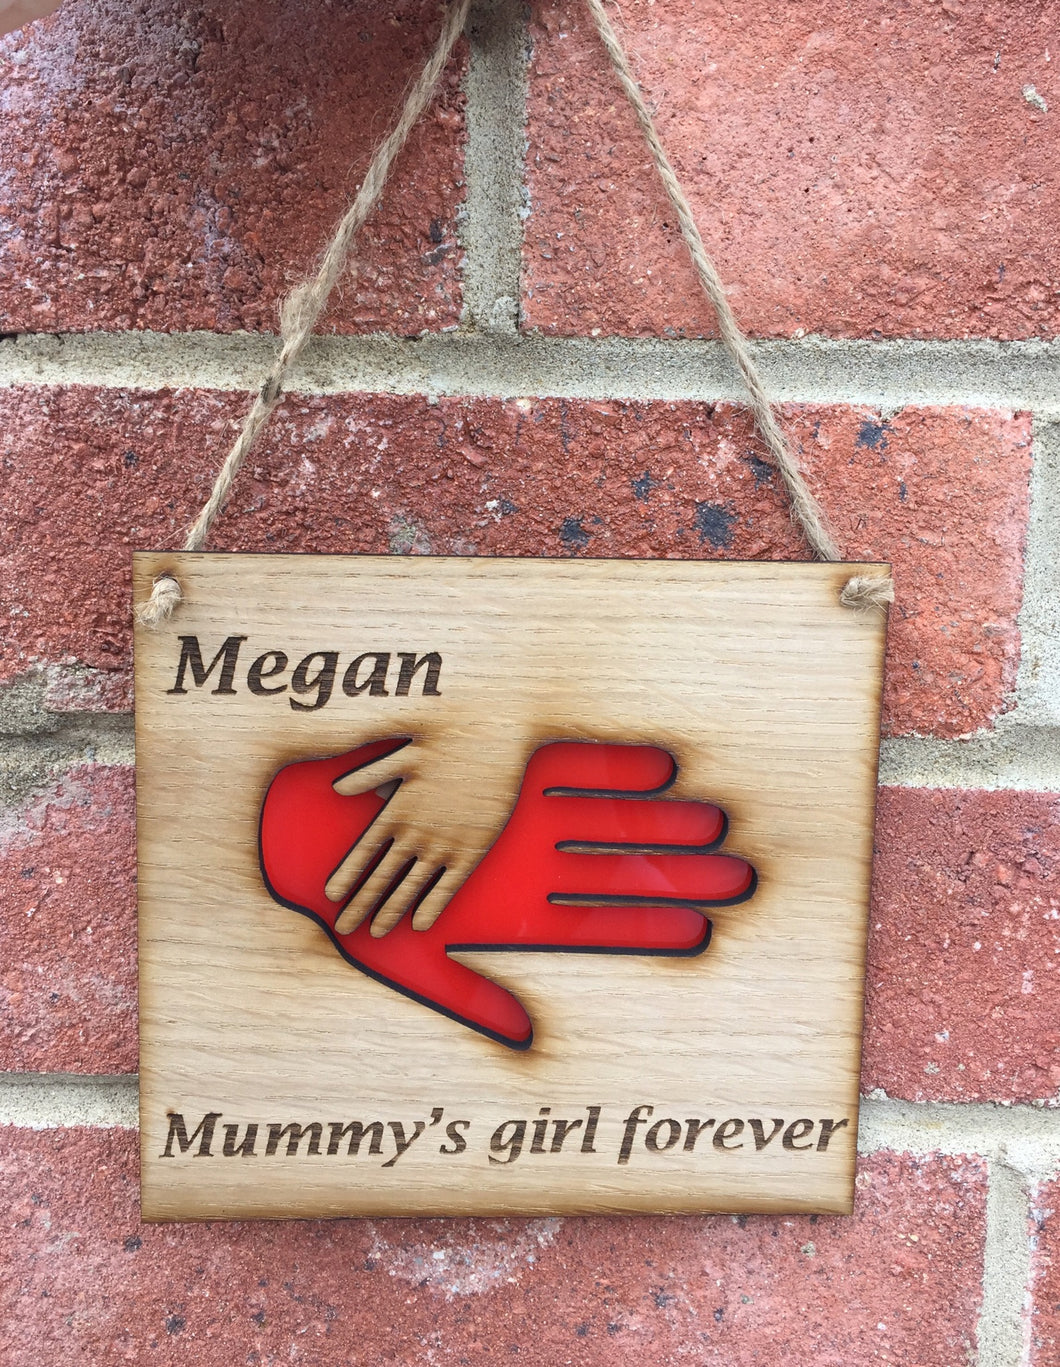 Oak veneer personalised hands plaque - Laser LLama Designs Ltd